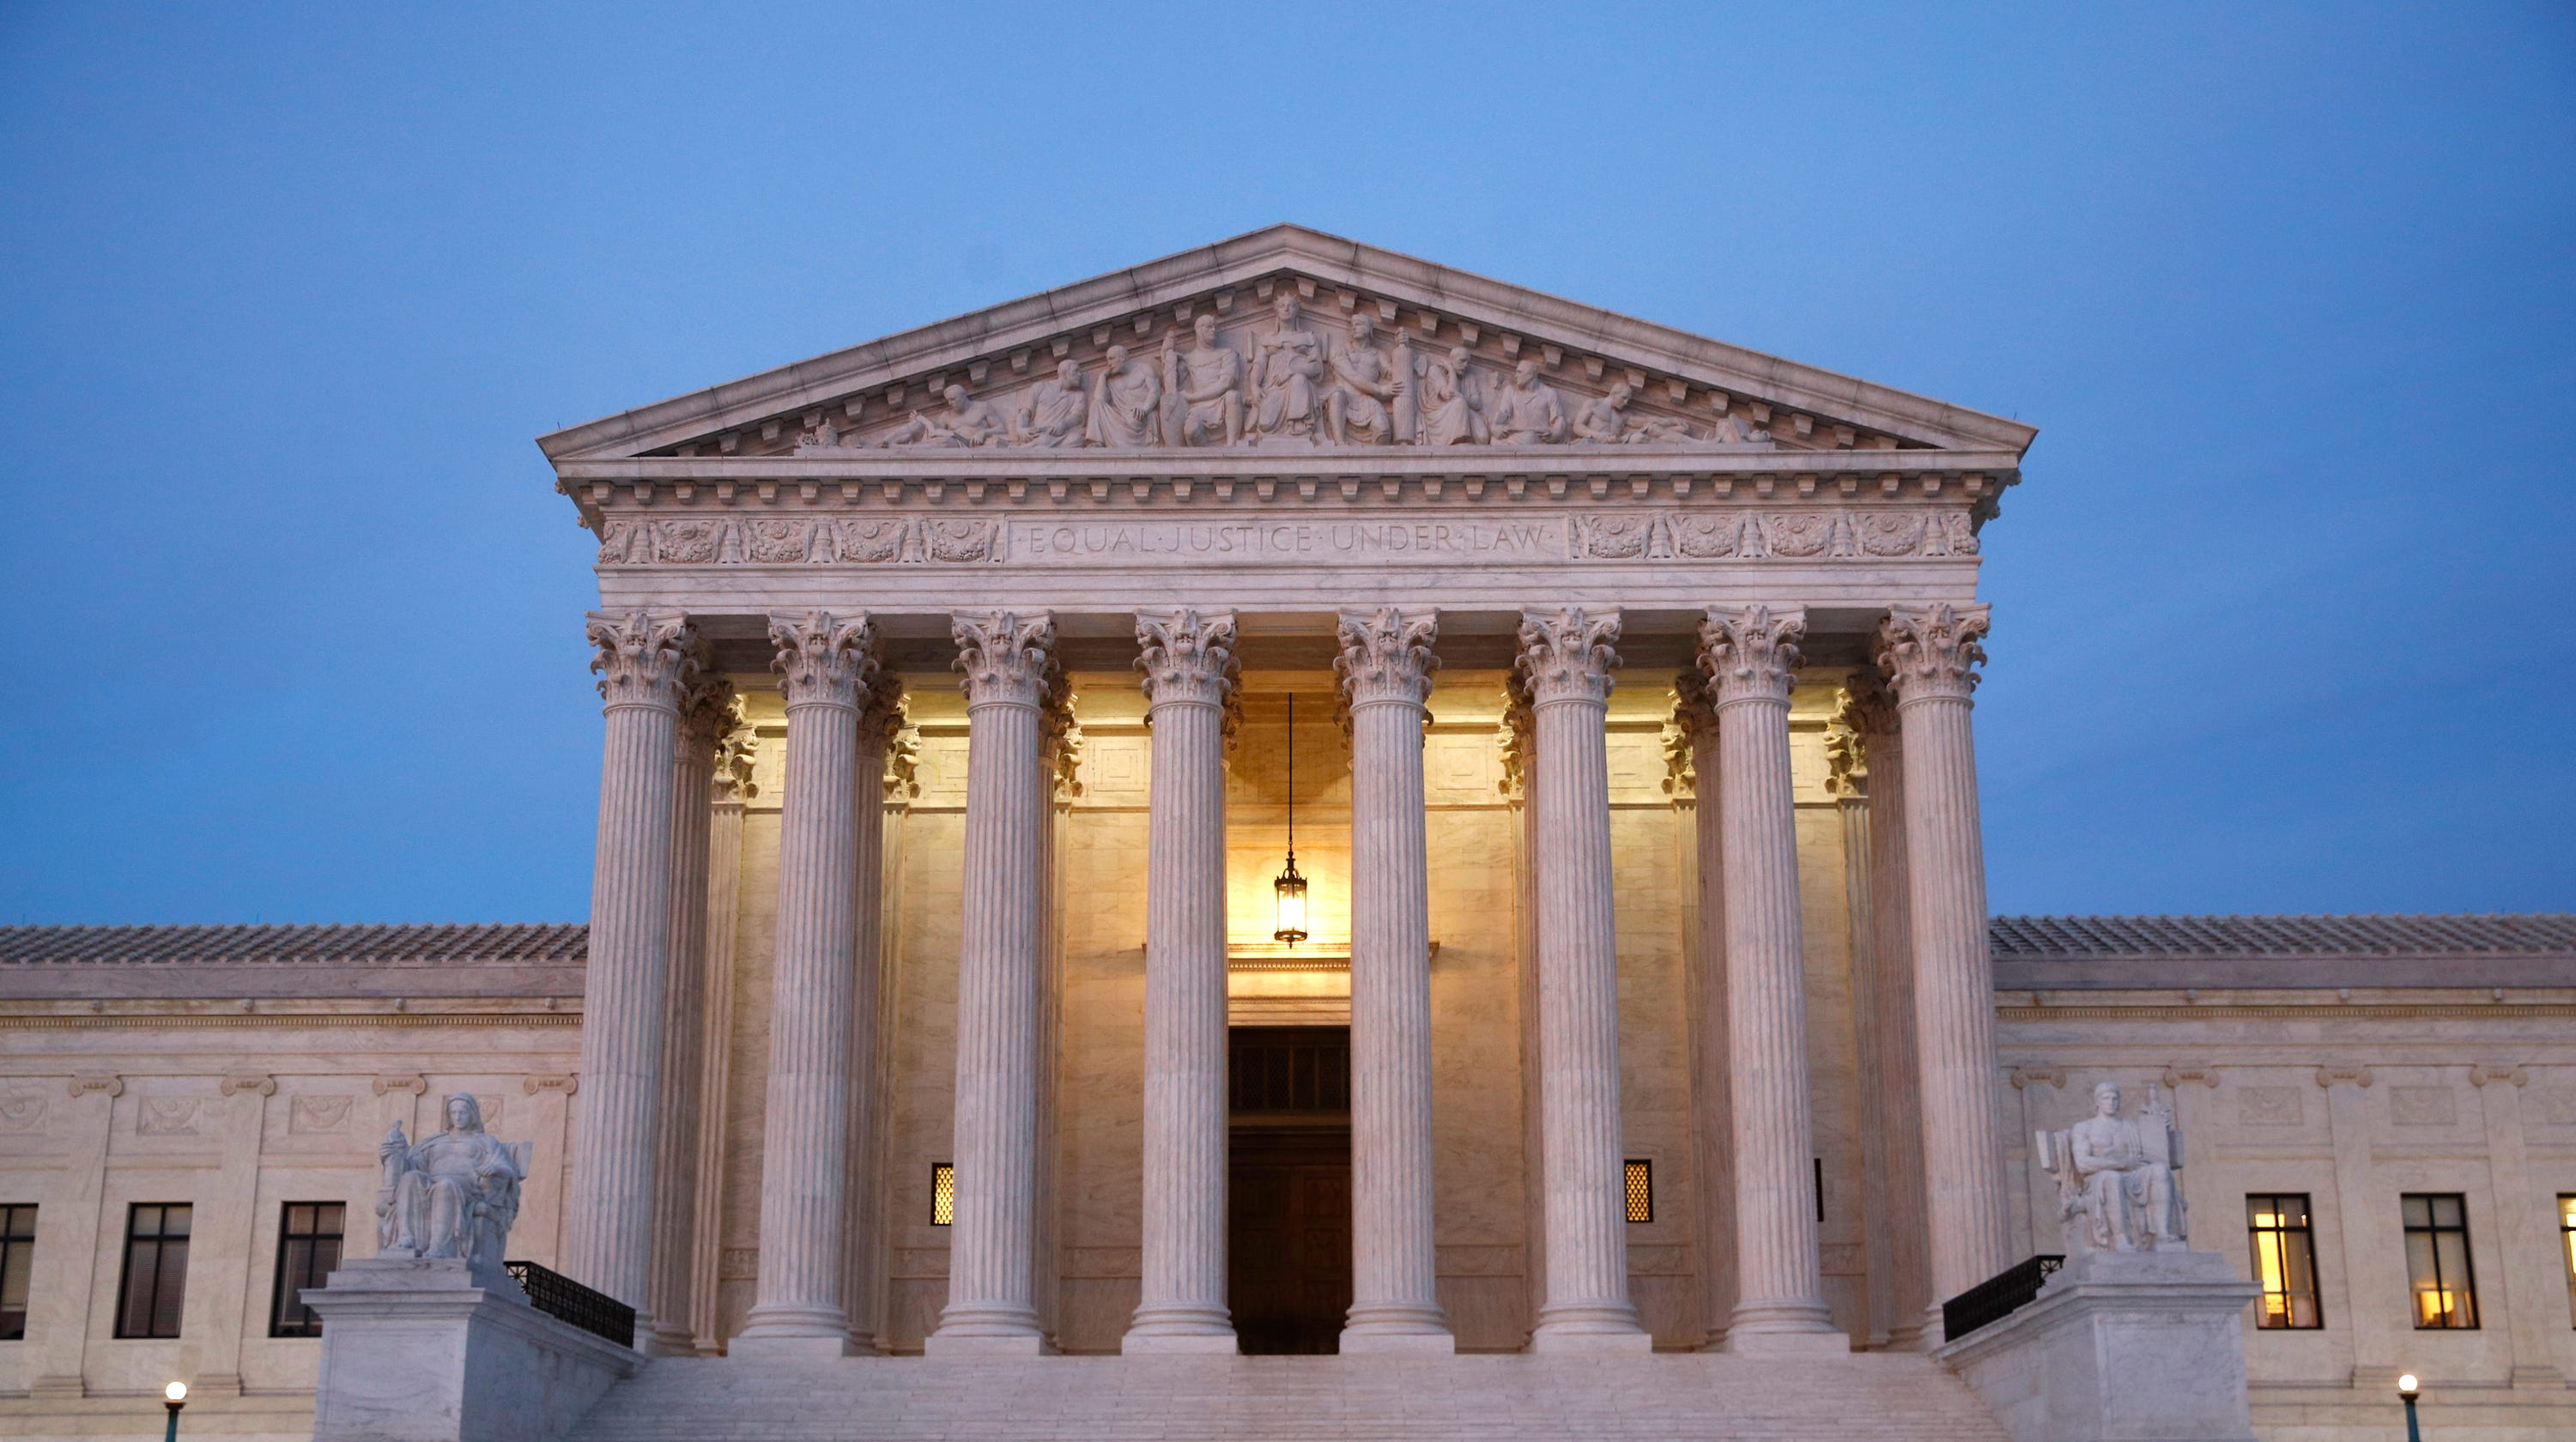 Property rights: Supreme Court issues decision on ...